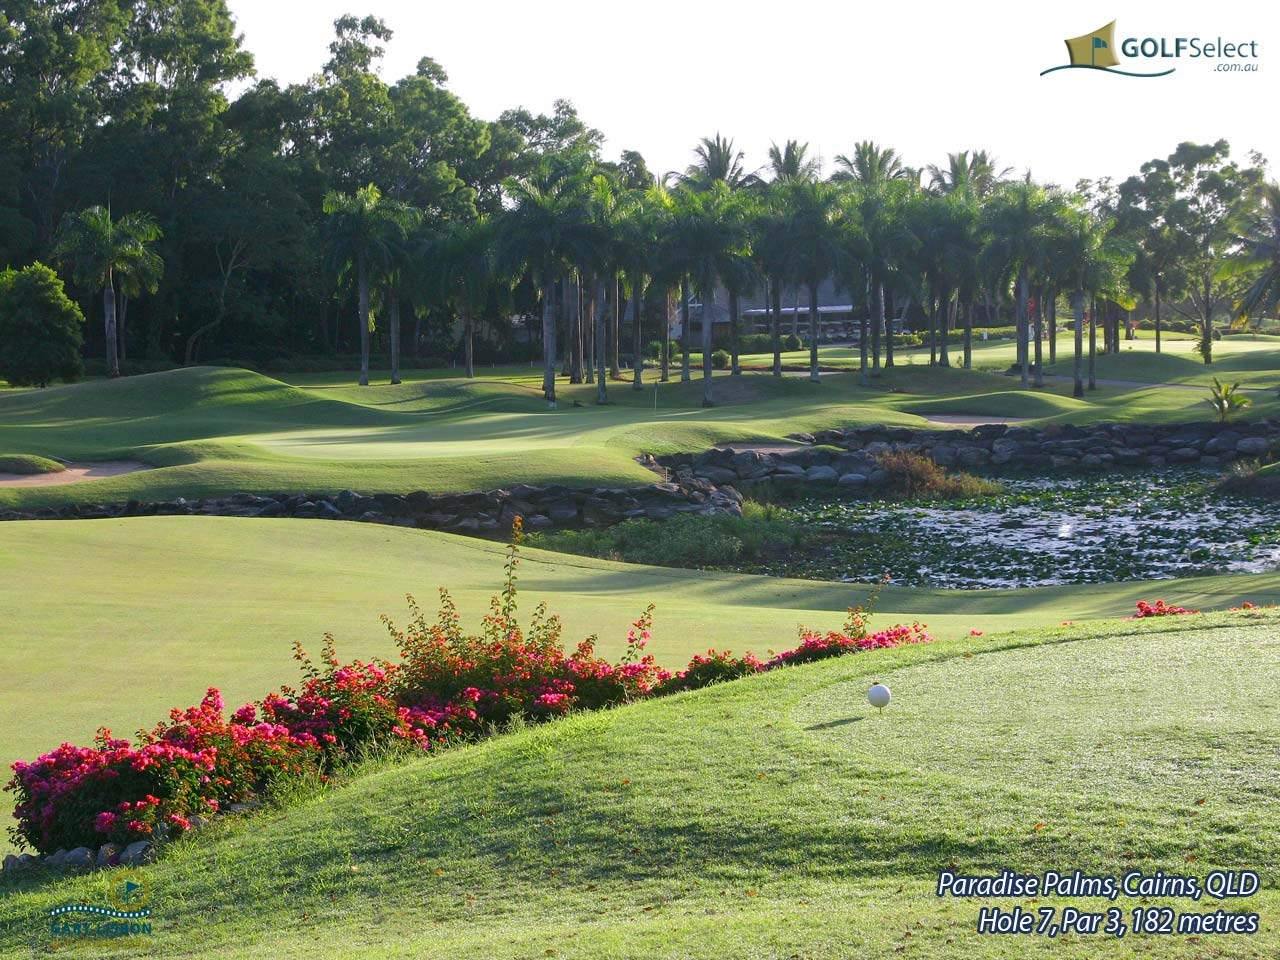 Paradise Palms Resort and Country Club Hole 7, Par 3, 182 metres